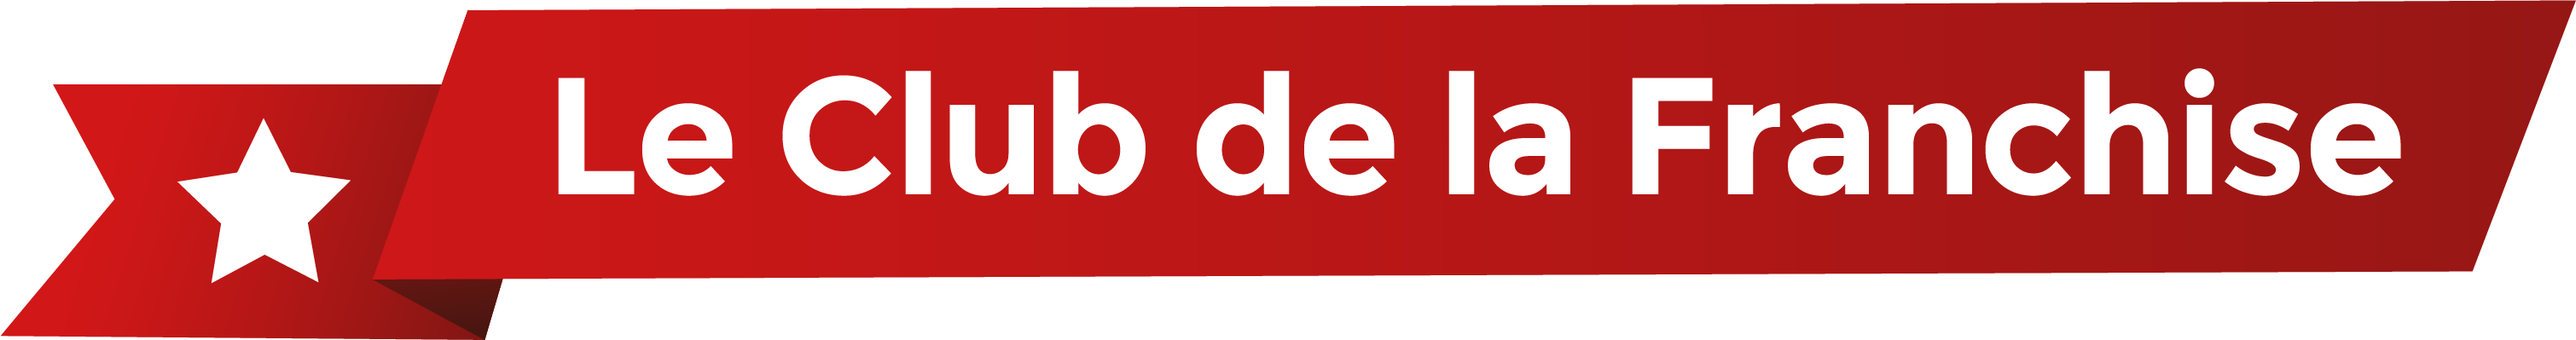 le-club-de-la-franchise-logo